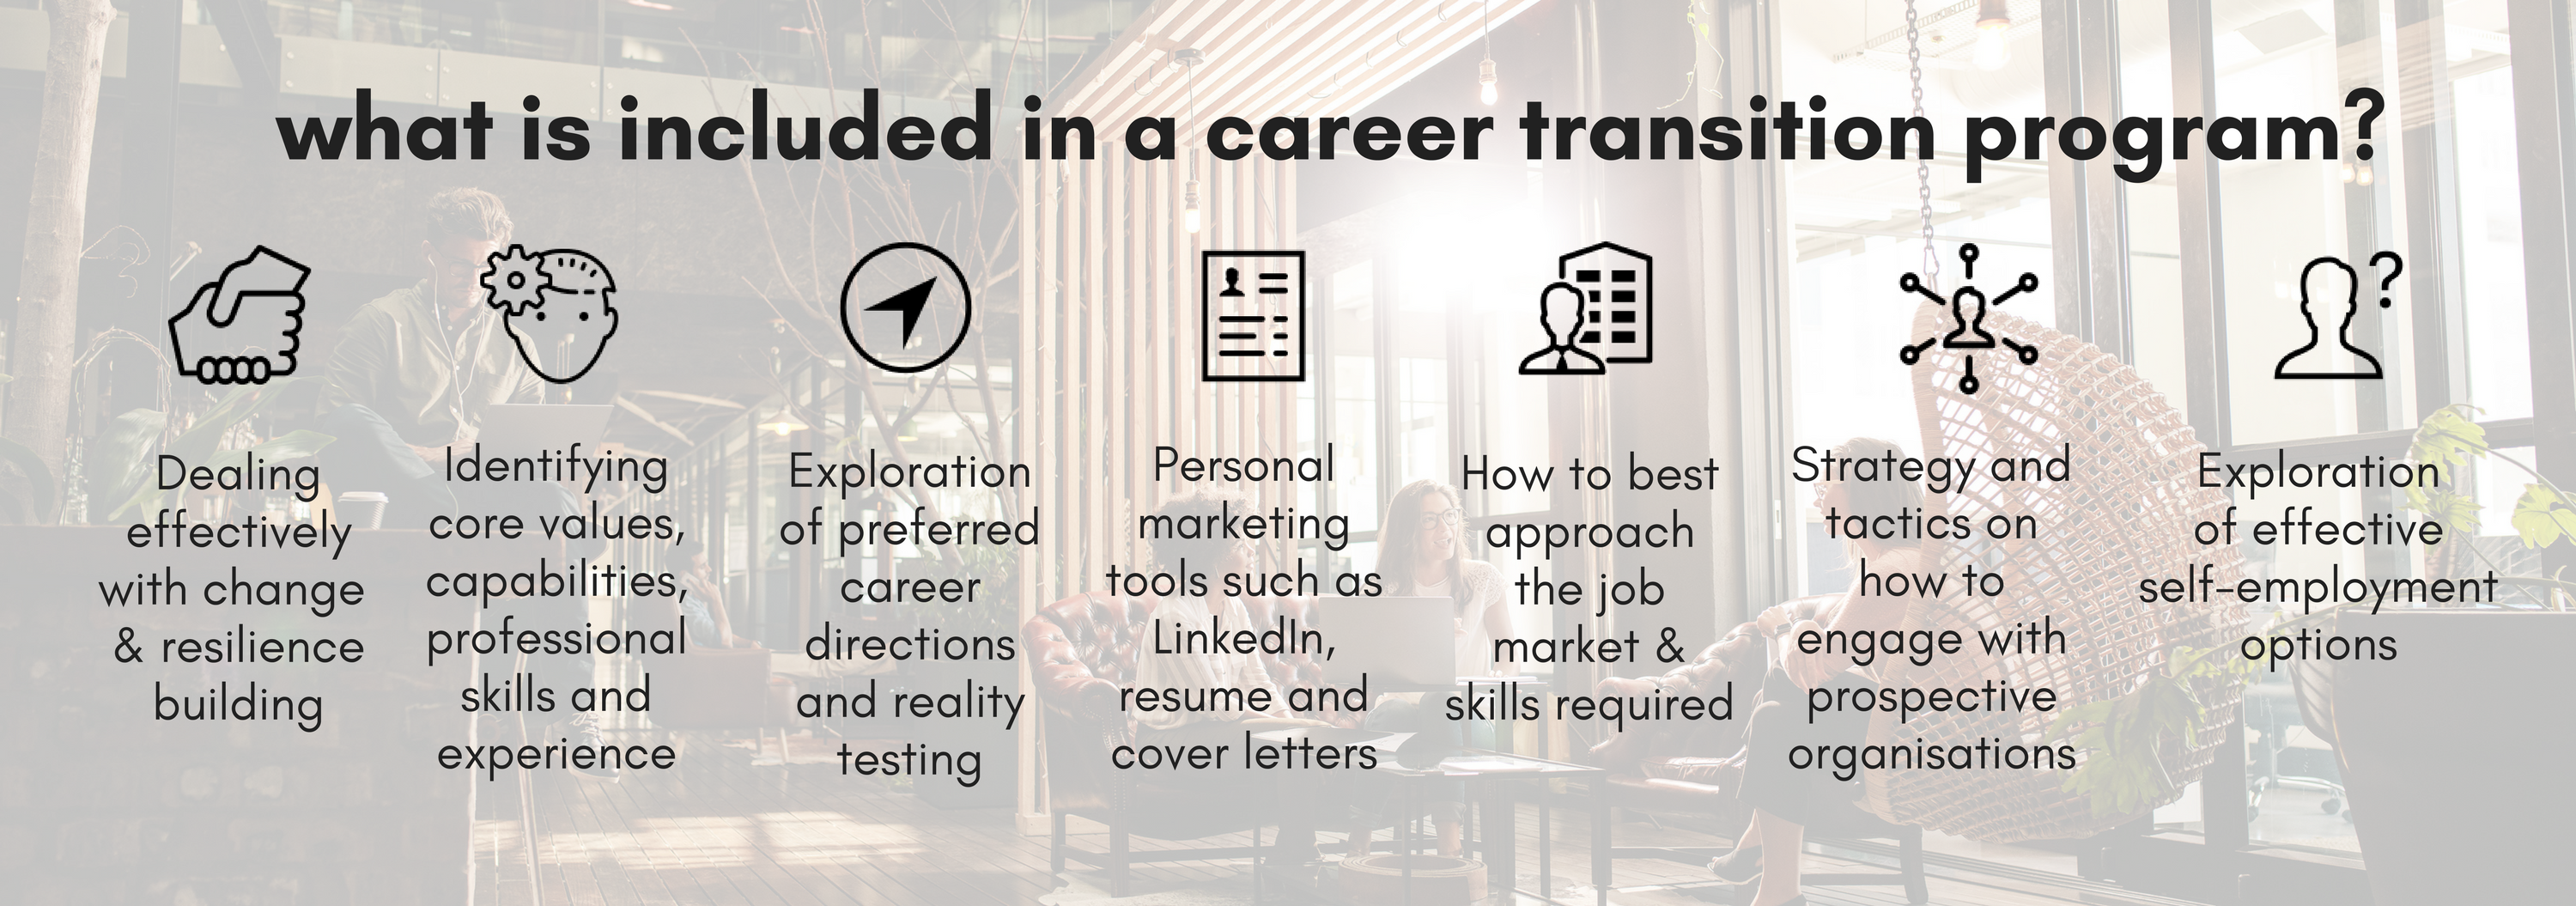 what is included in a career transition program_ (1).png